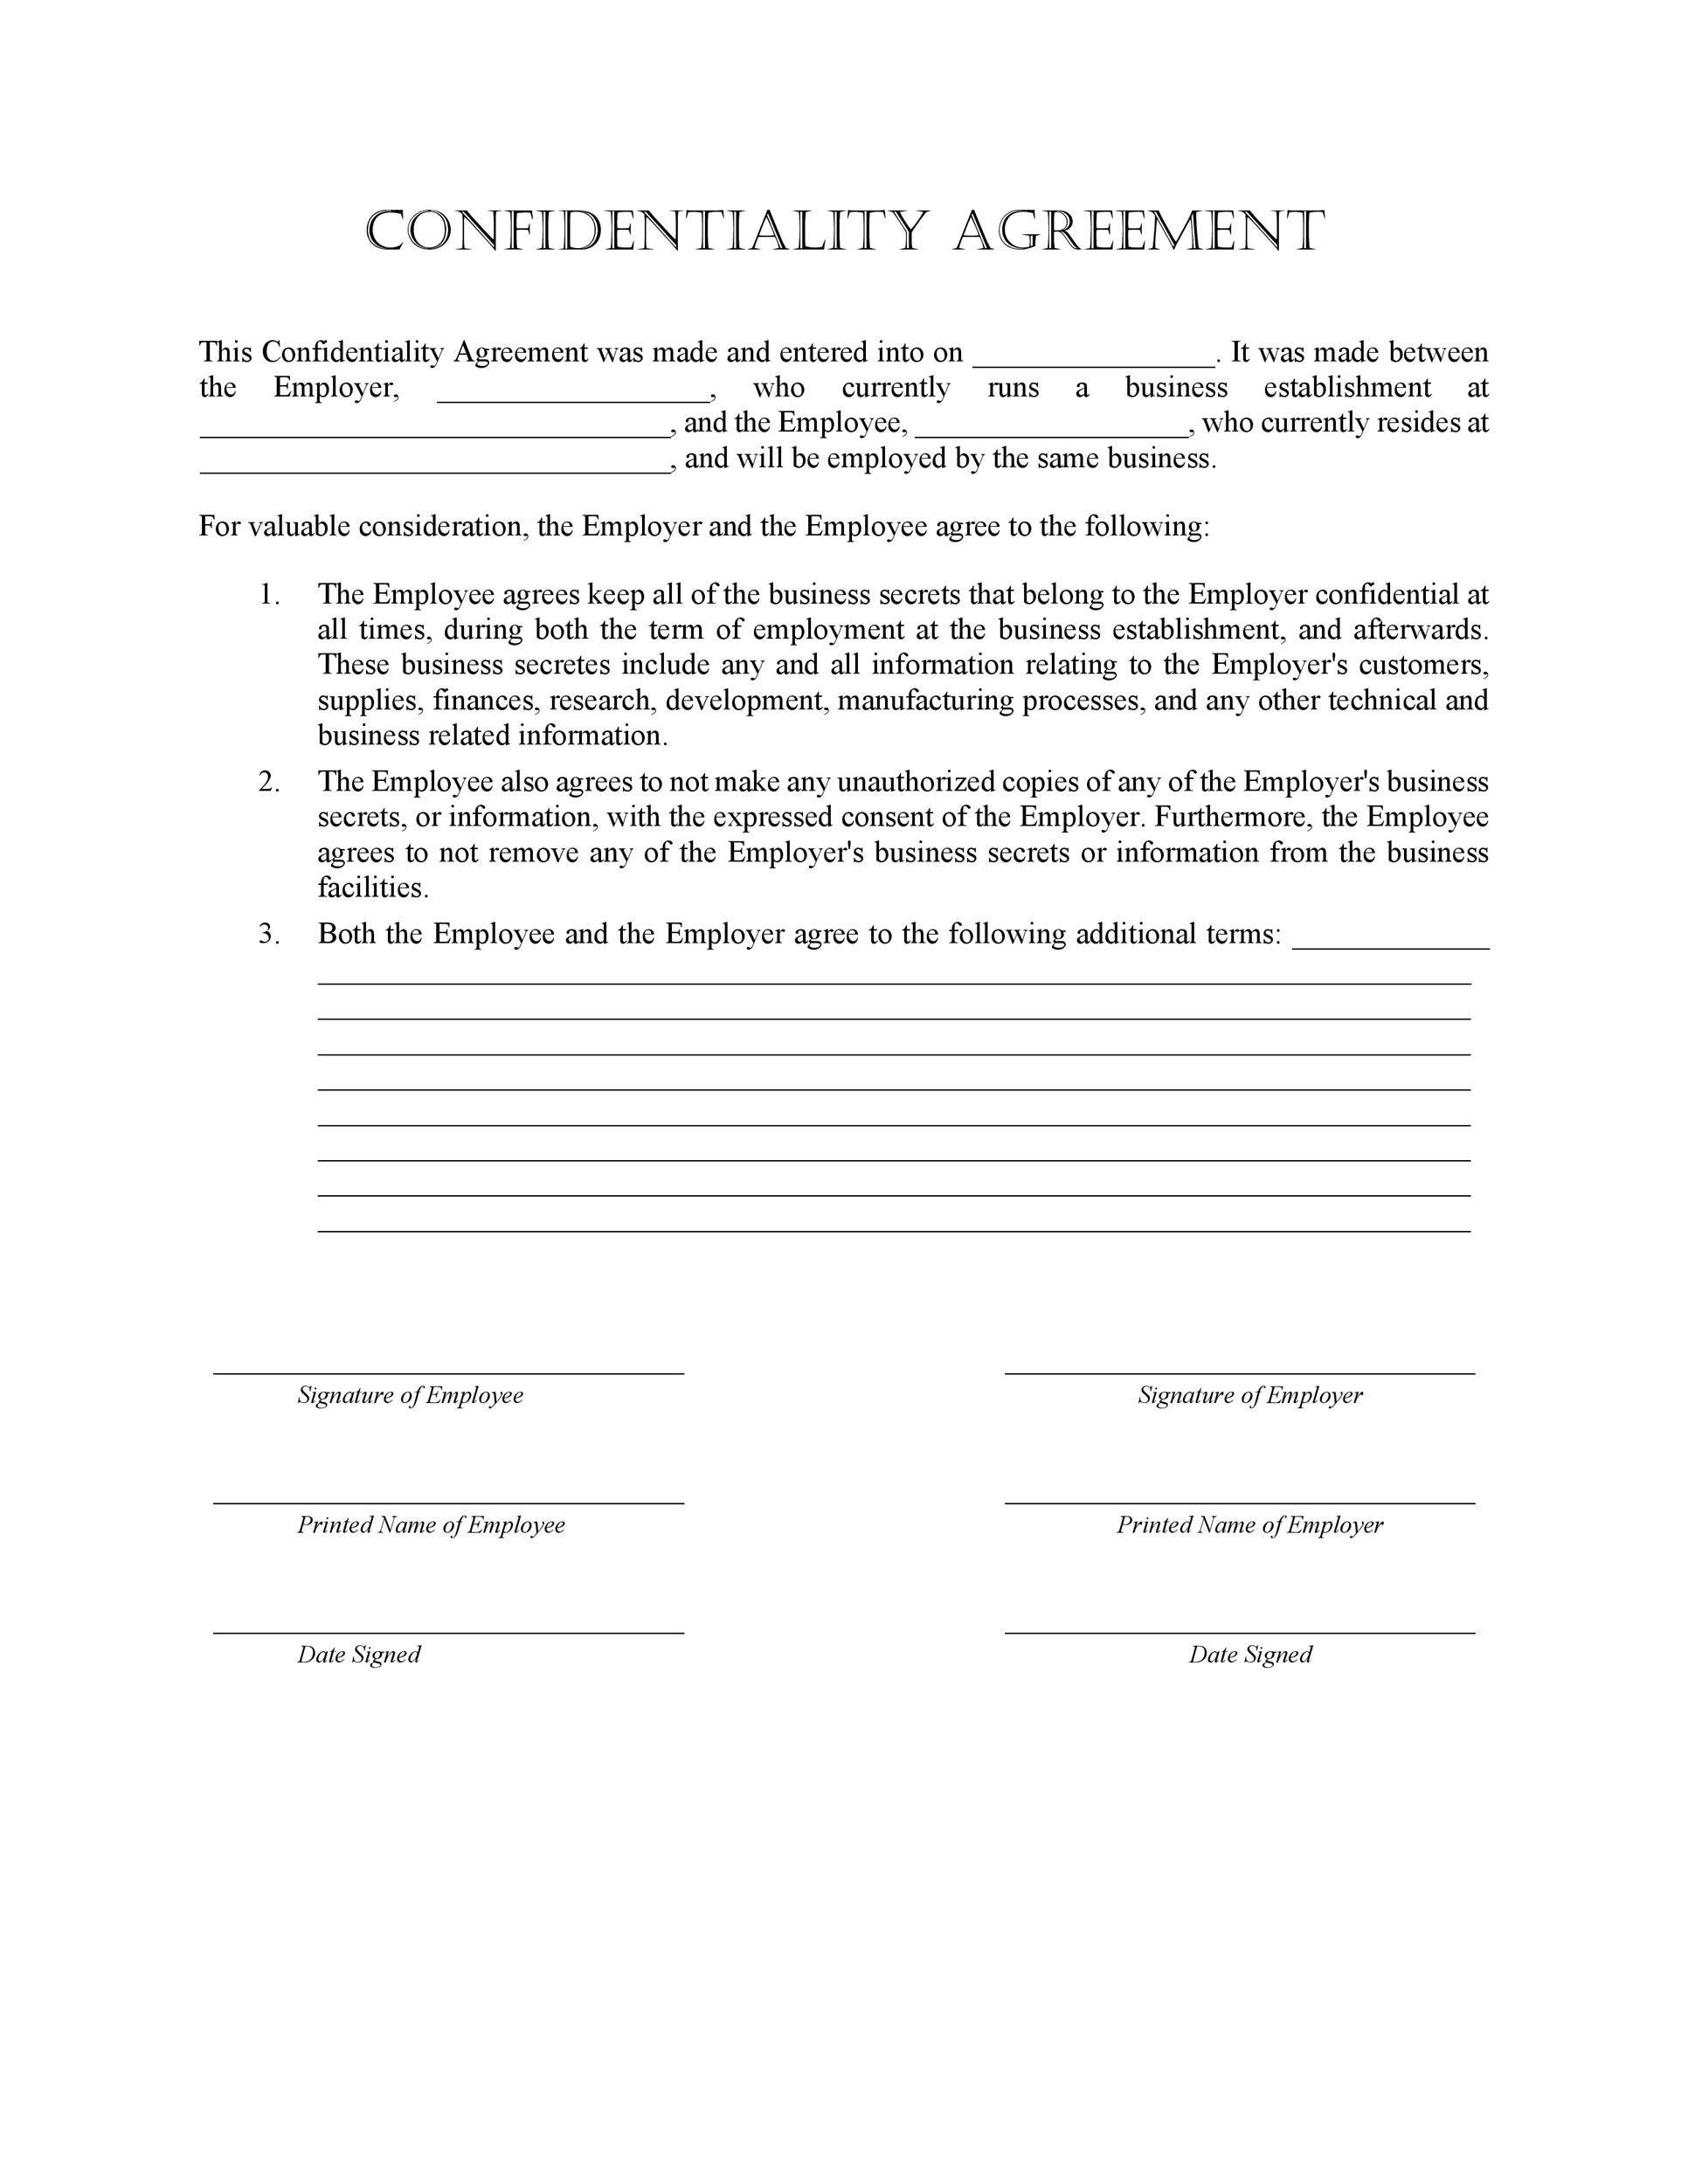 40 Non Disclosure Agreement Templates, Samples  Forms - Template Lab - standard confidentiality agreement